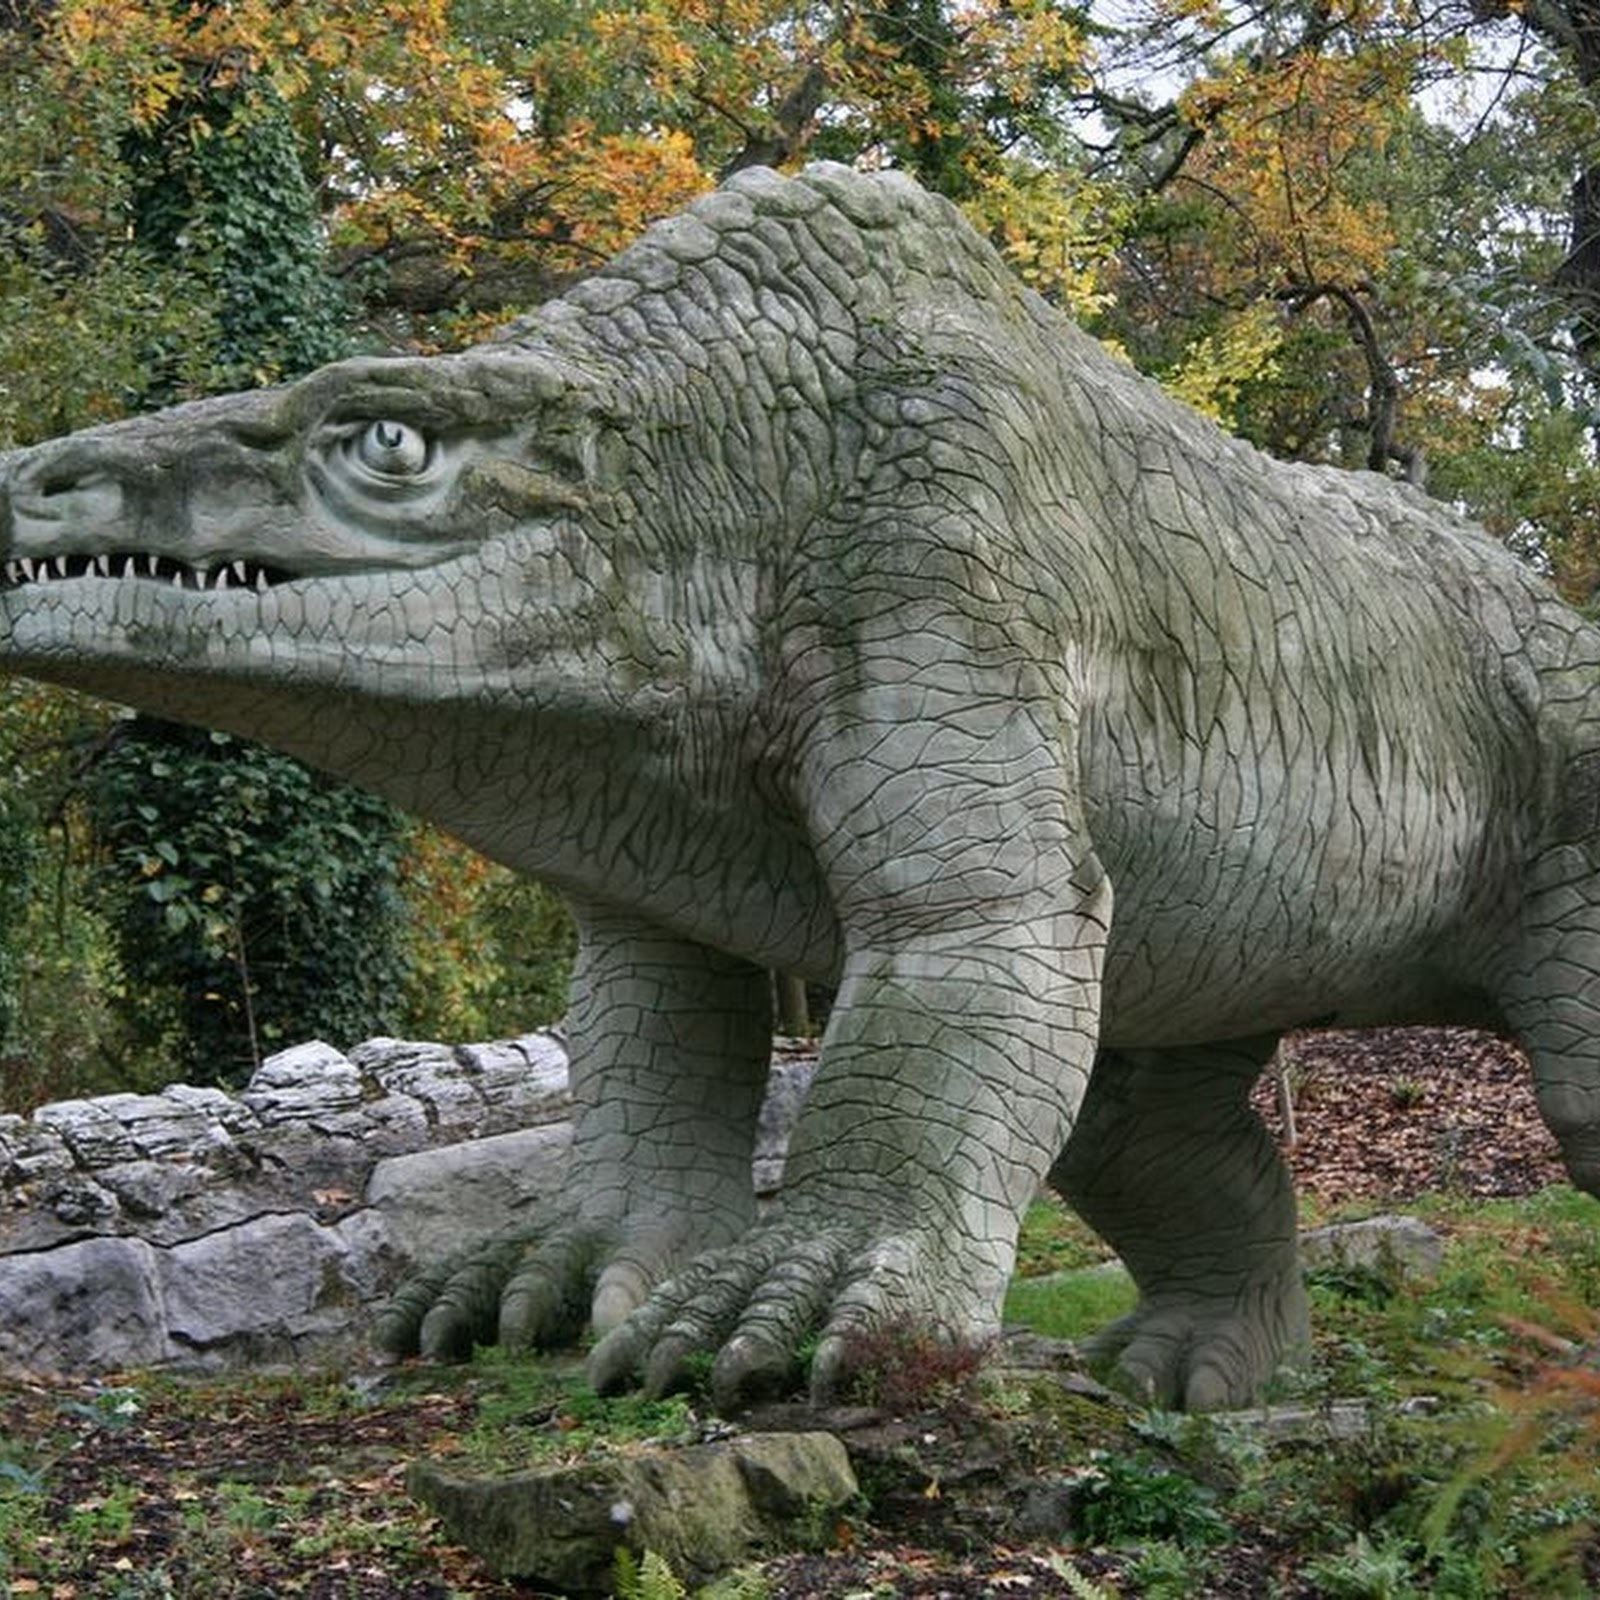 The Strange Victorian Dinosaurs of Crystal Palace Park